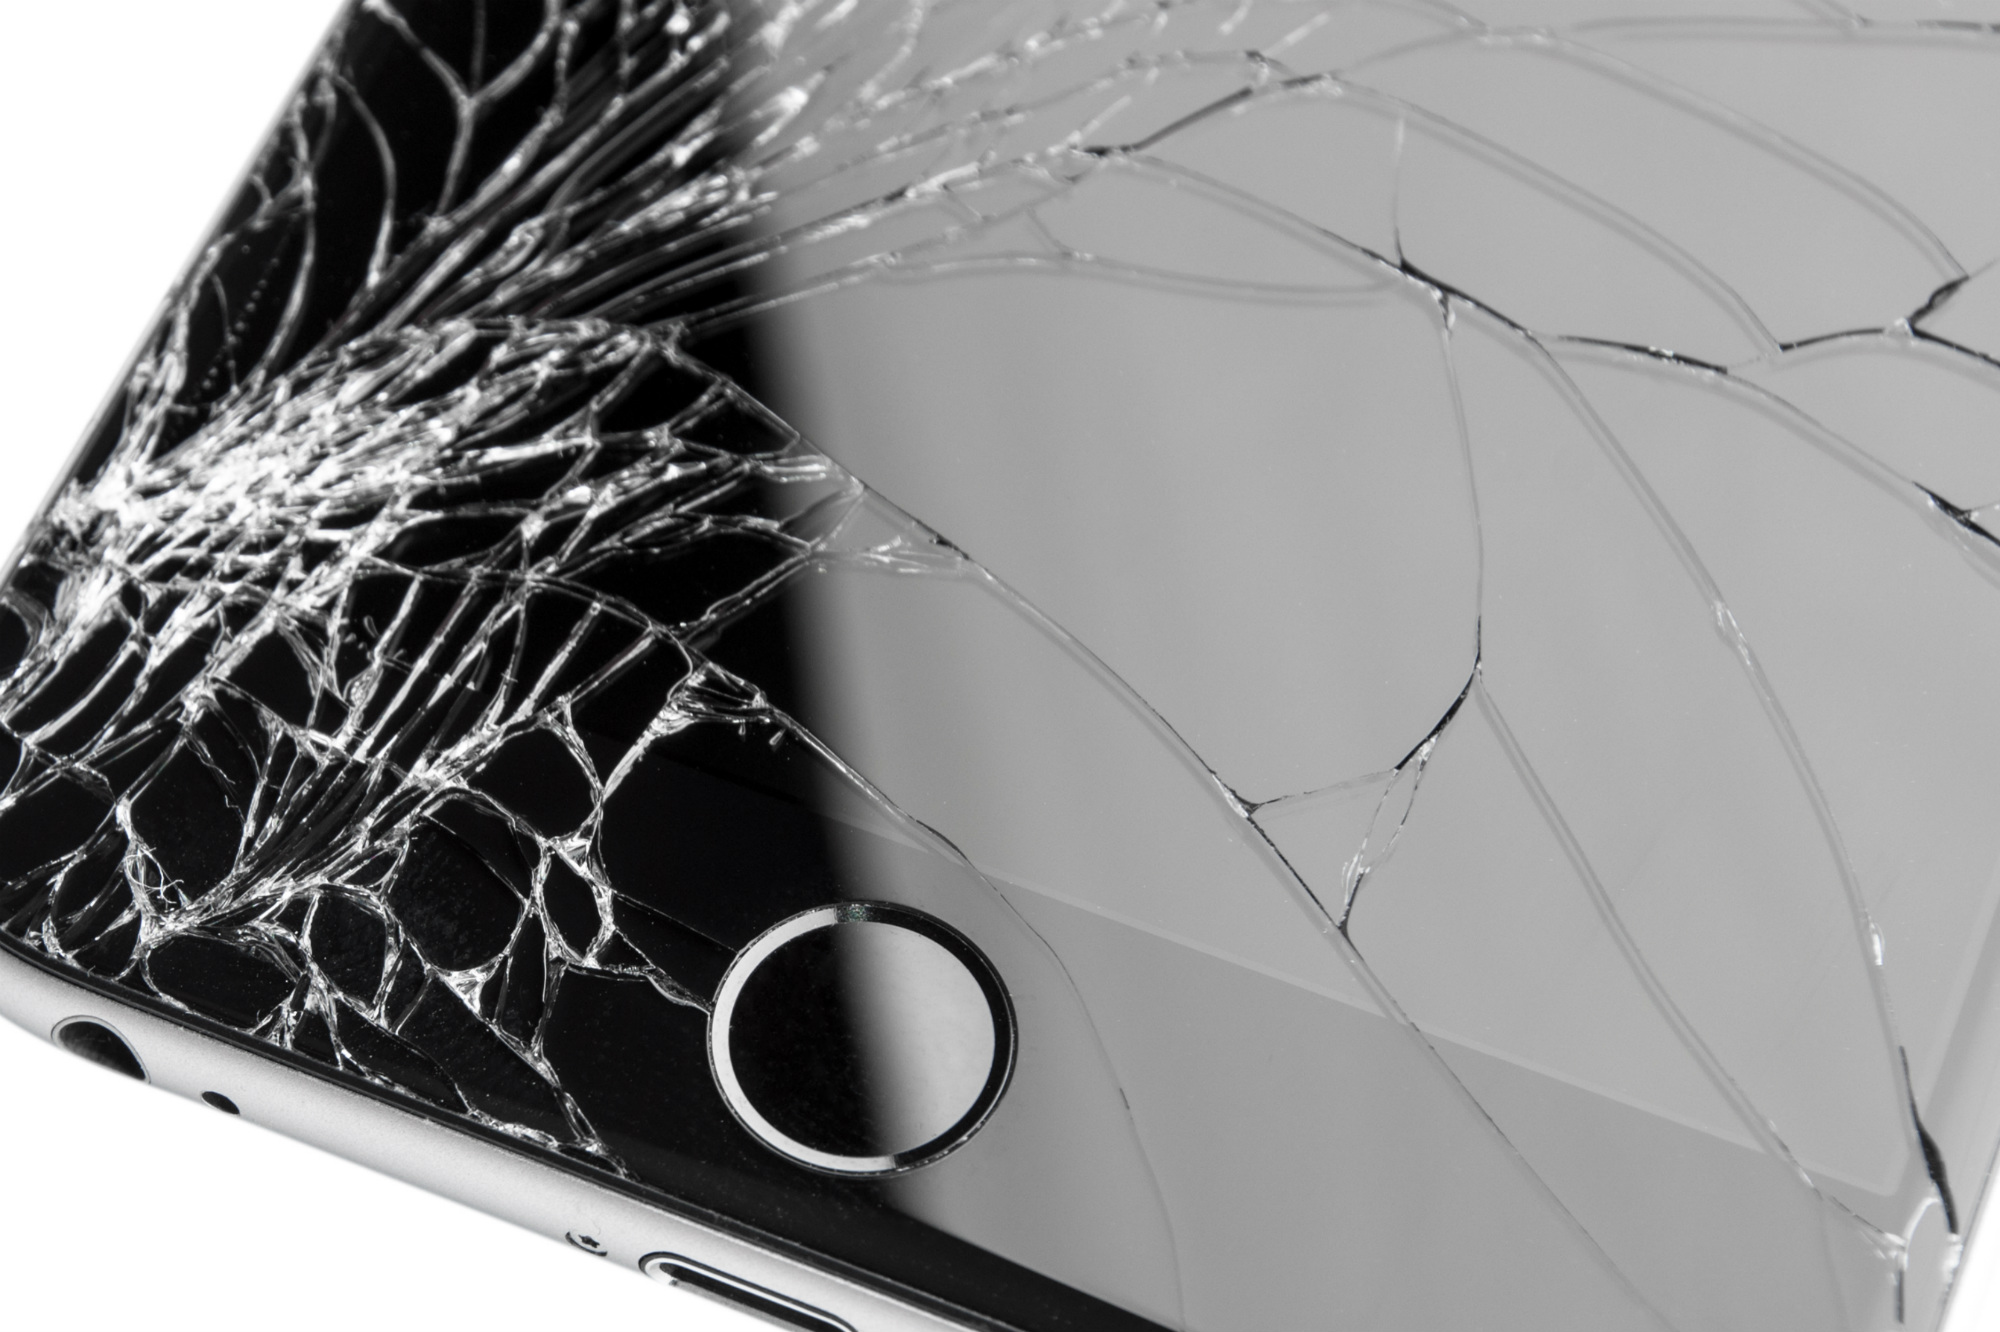 3 mobile cracked screen